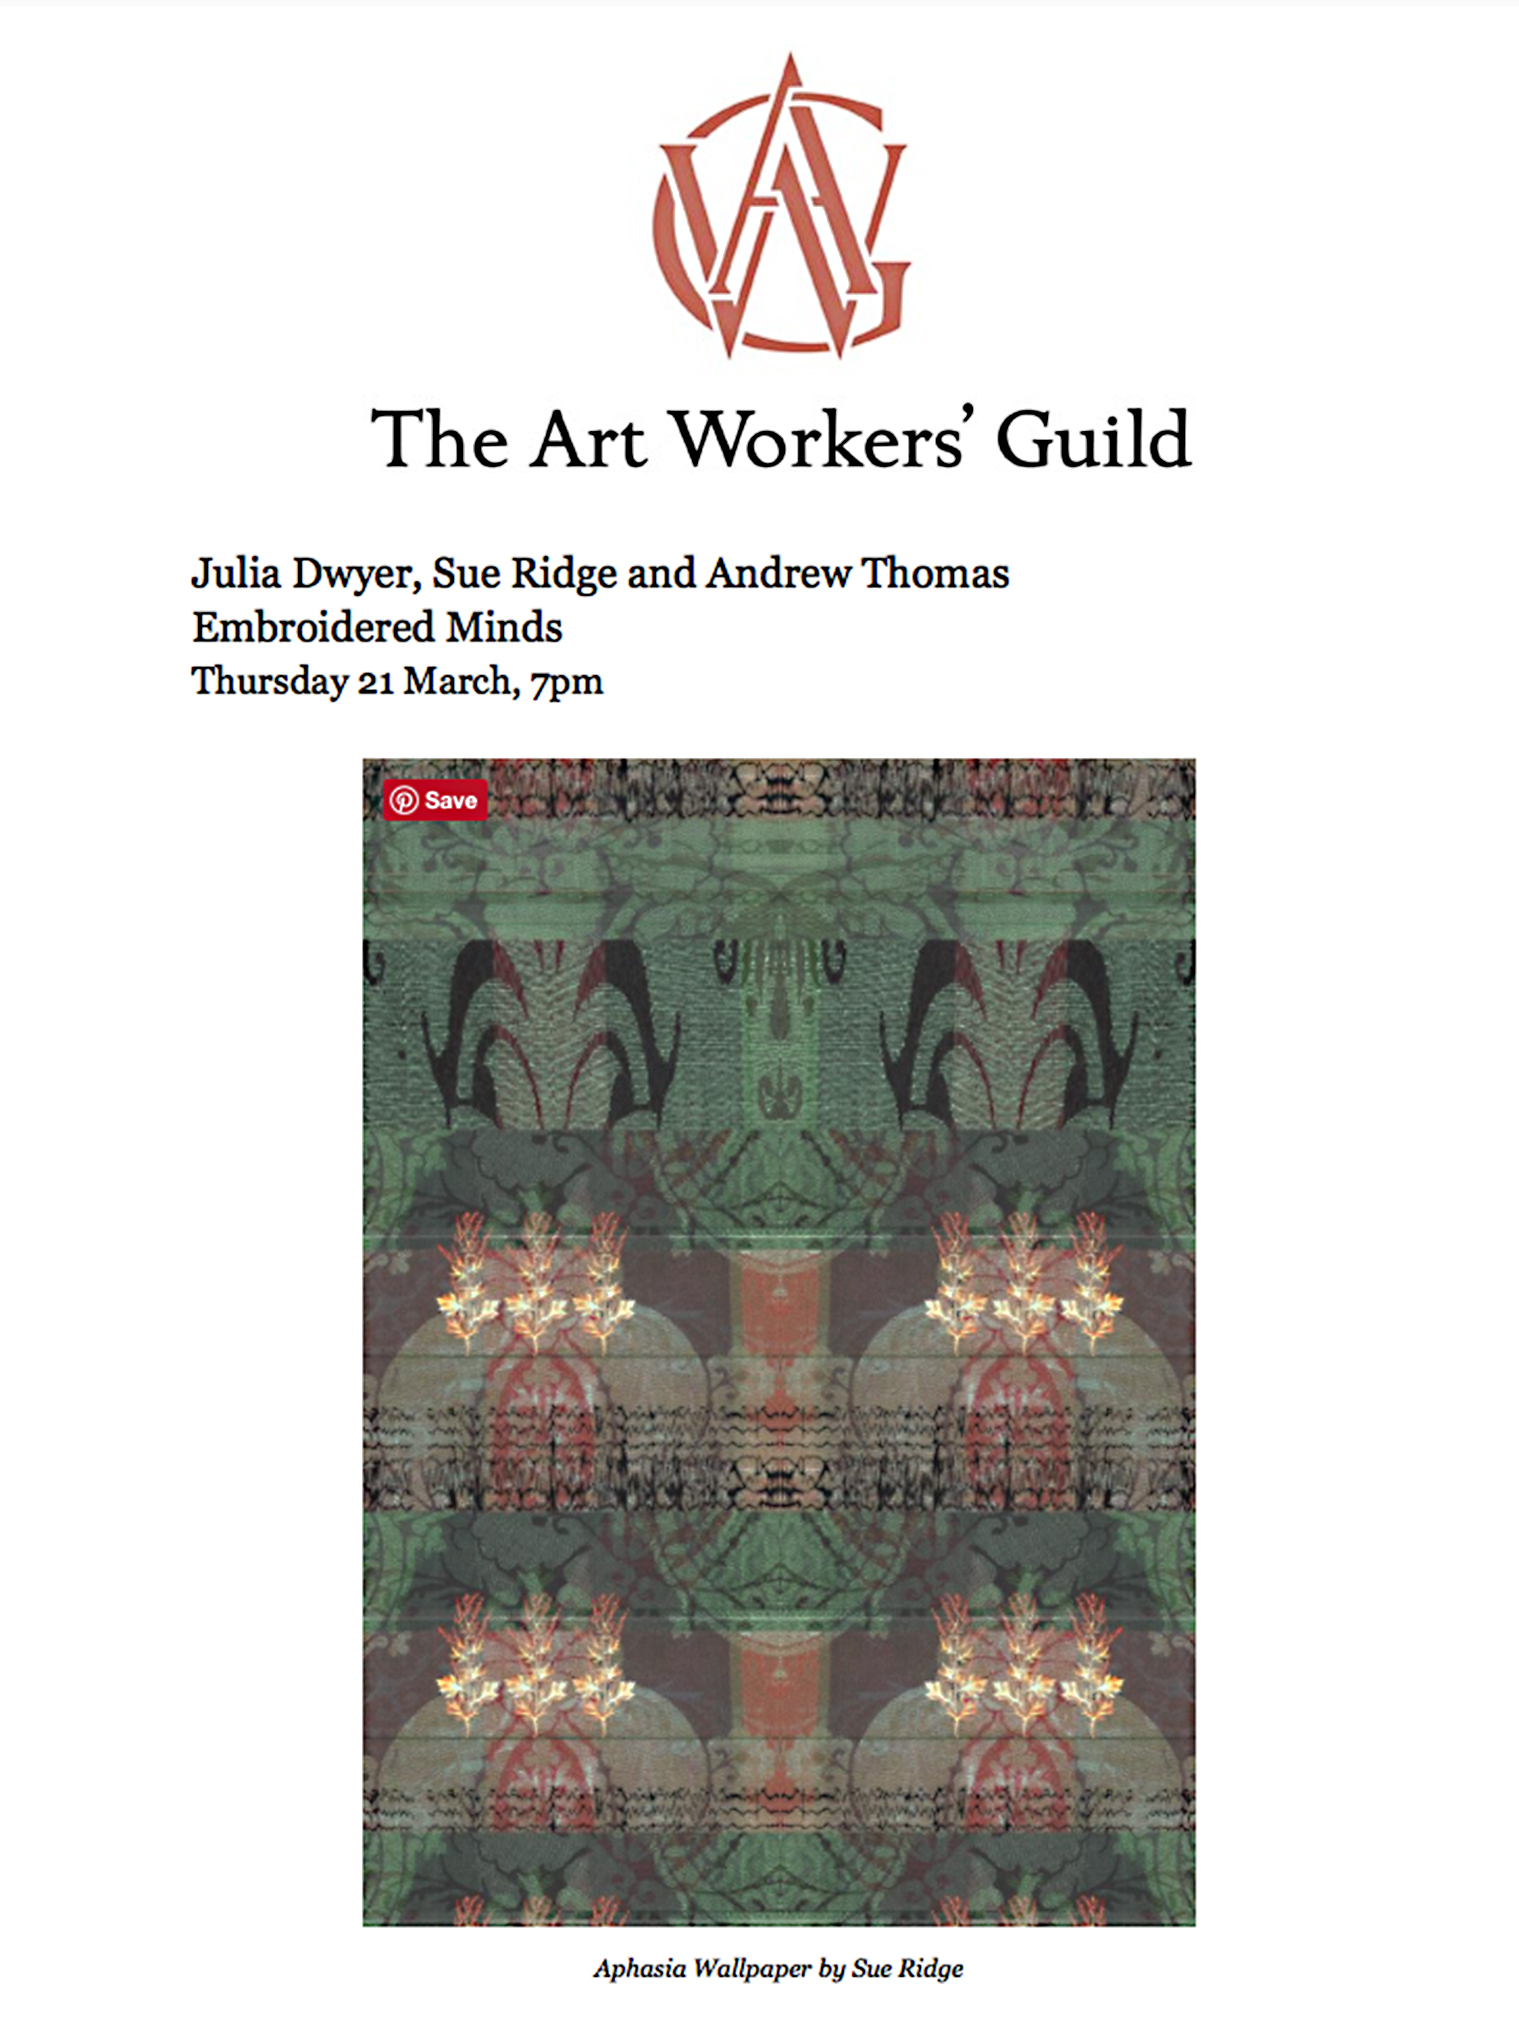 Art Workers Guild talk